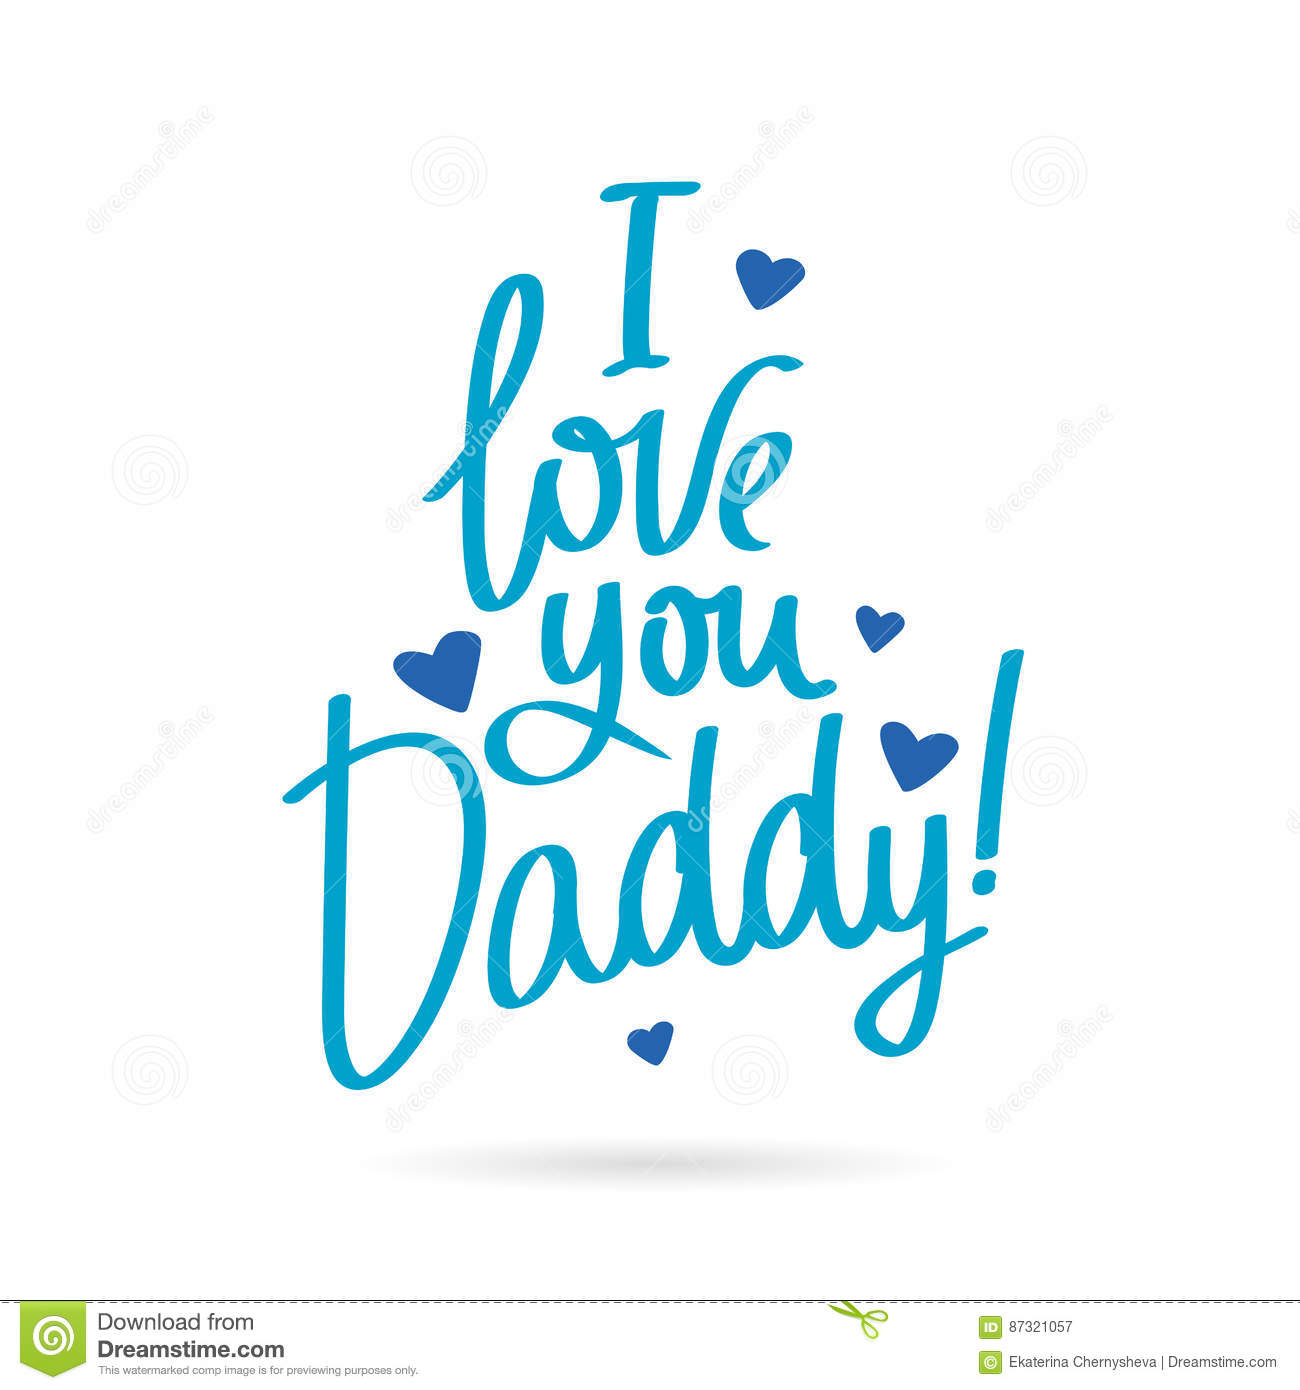 Daddy cartoons illustrations vector stock images - I love you daddy download ...